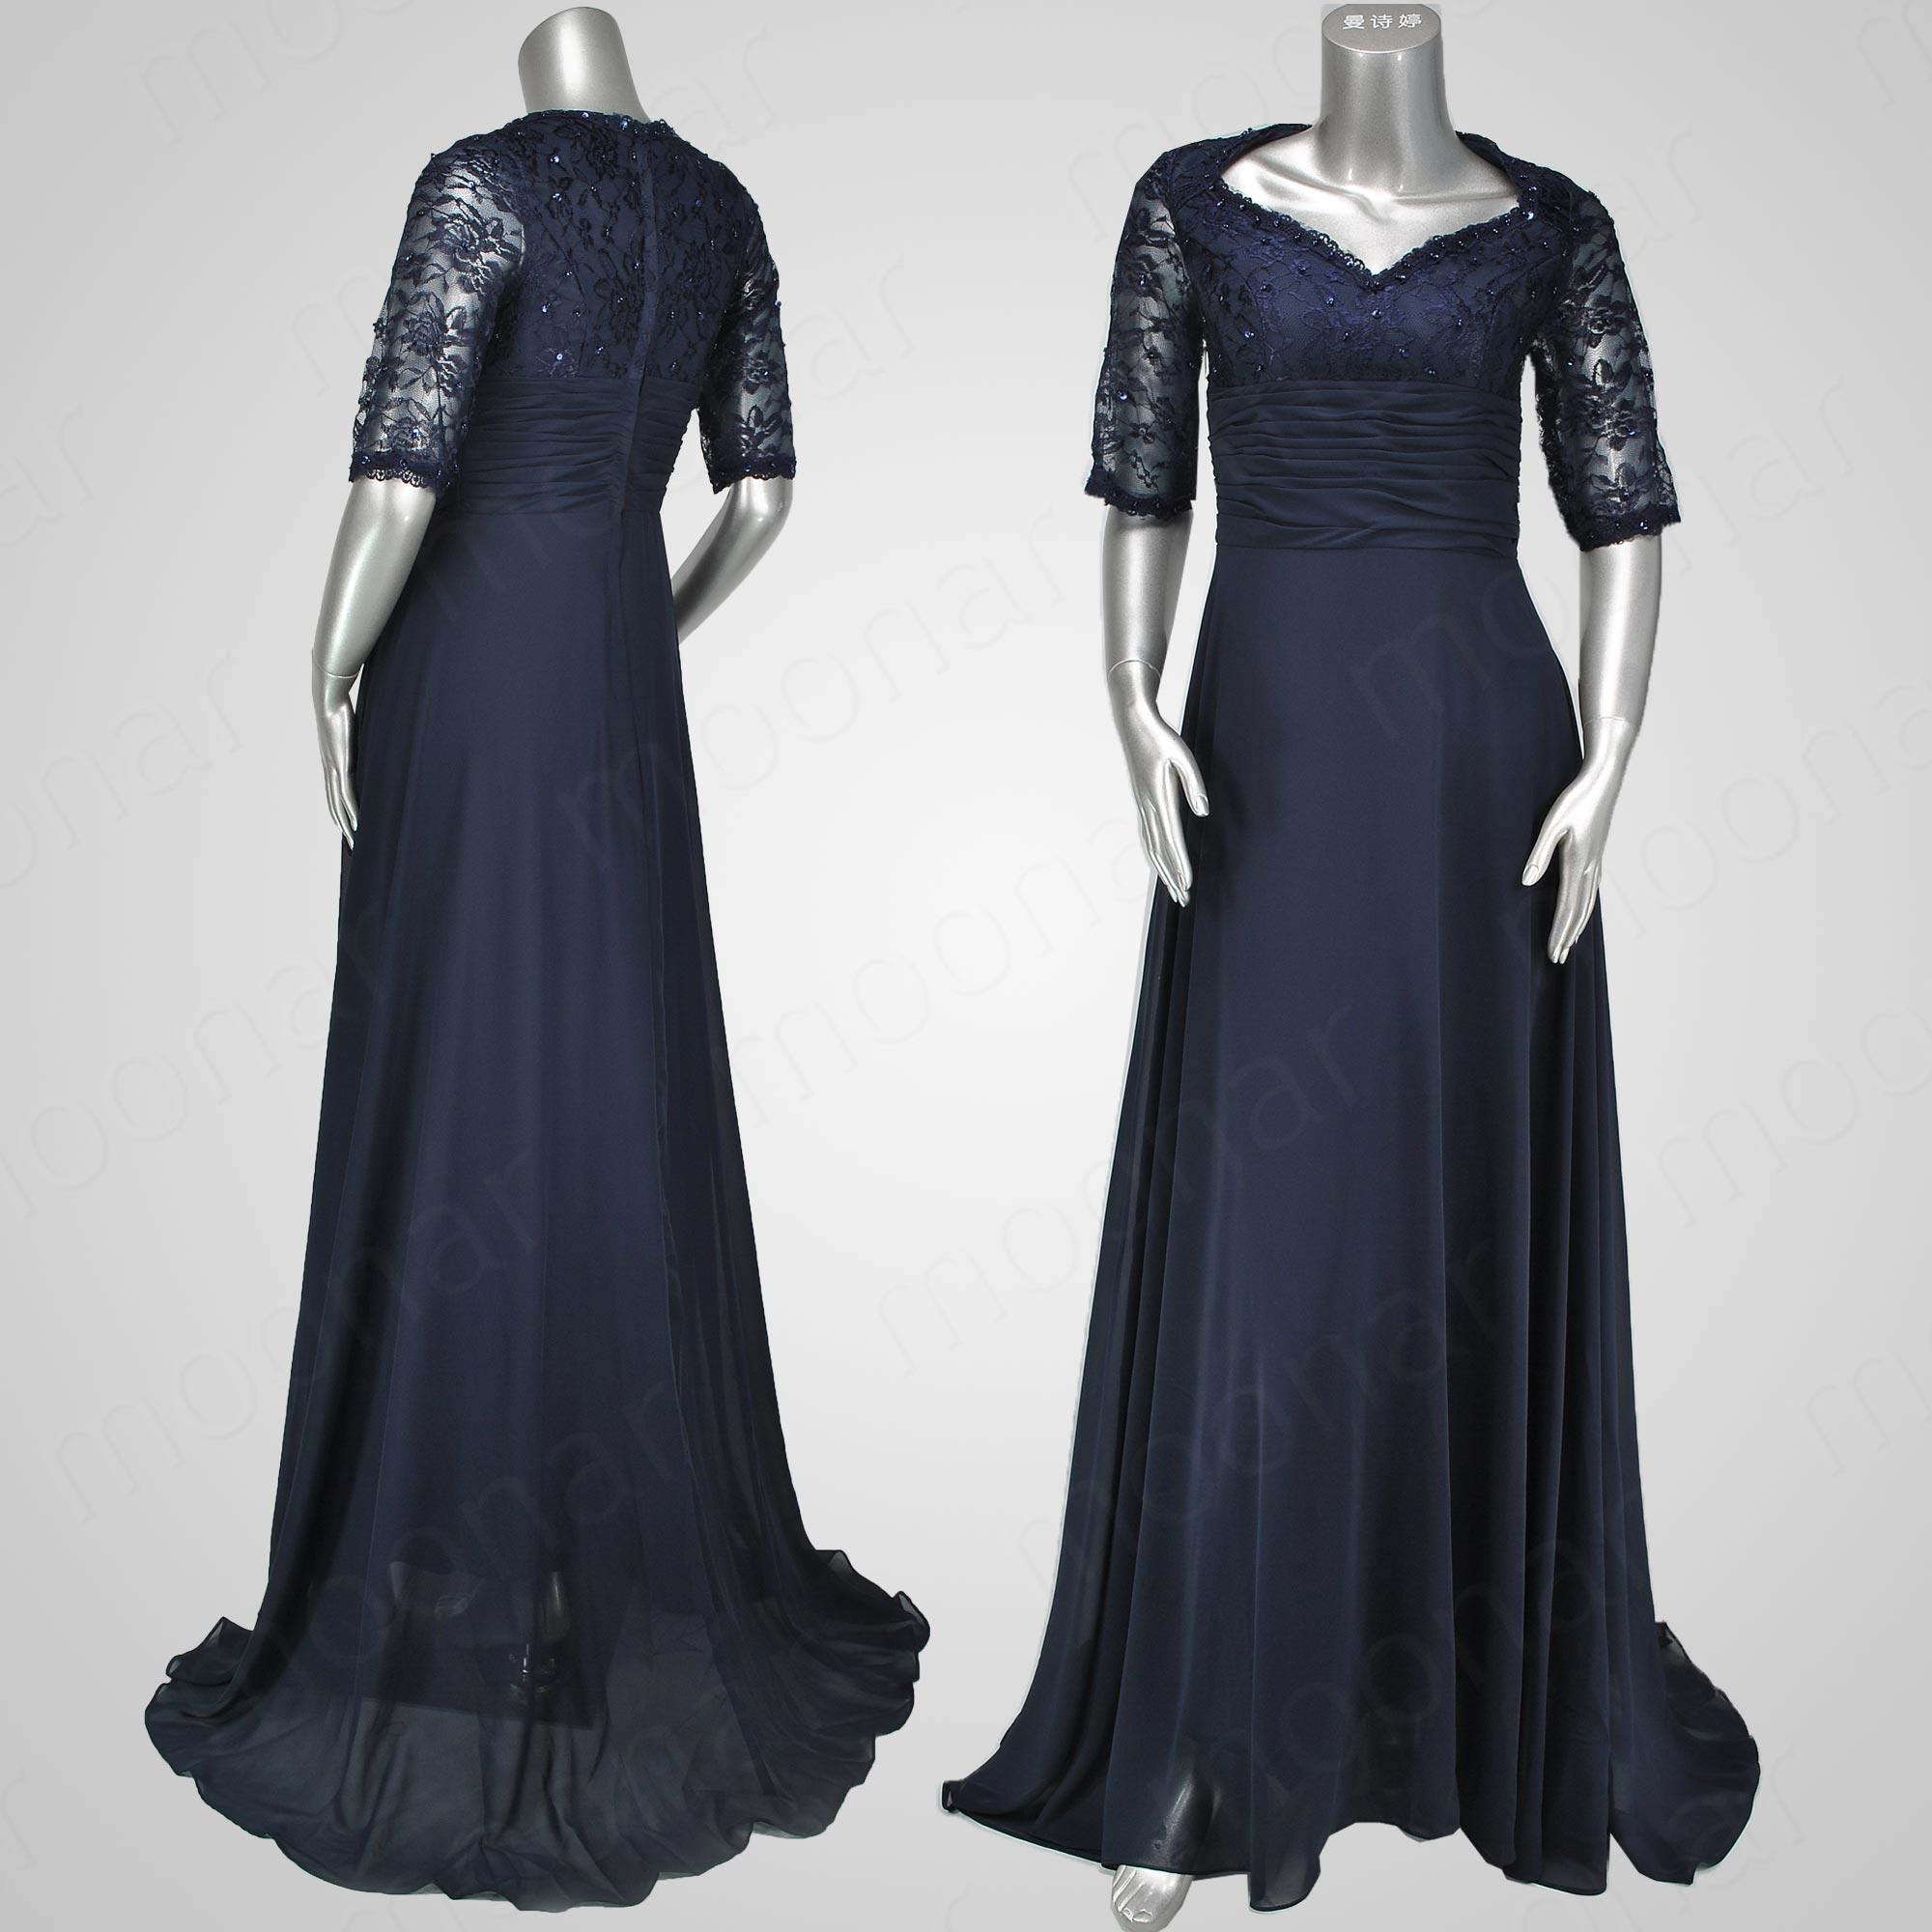 Formal evening dresses woman